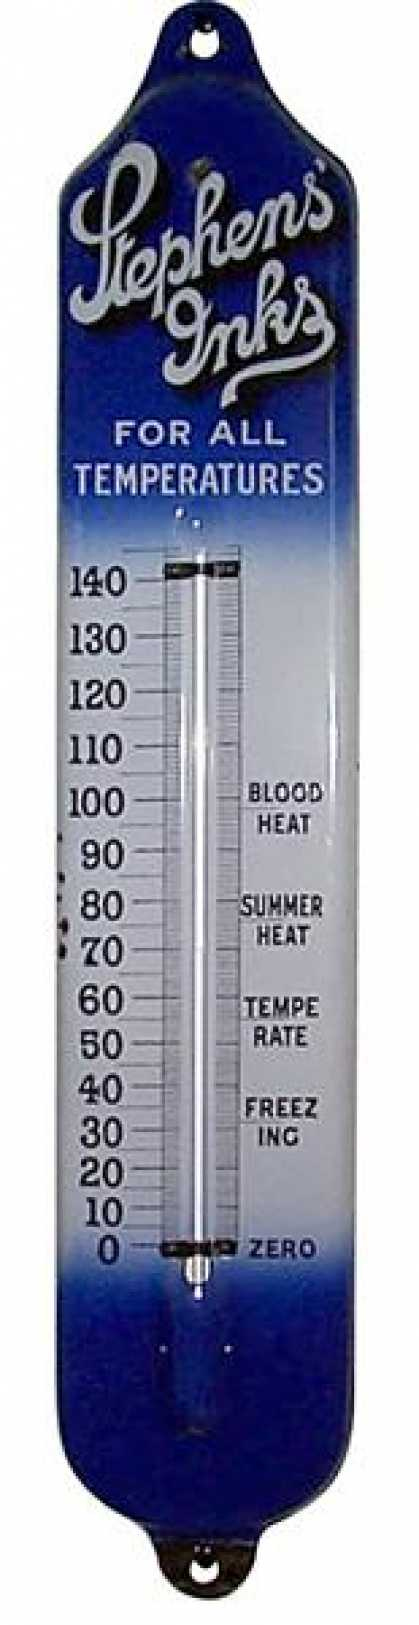 Stephen's Inks Thermometer Sign